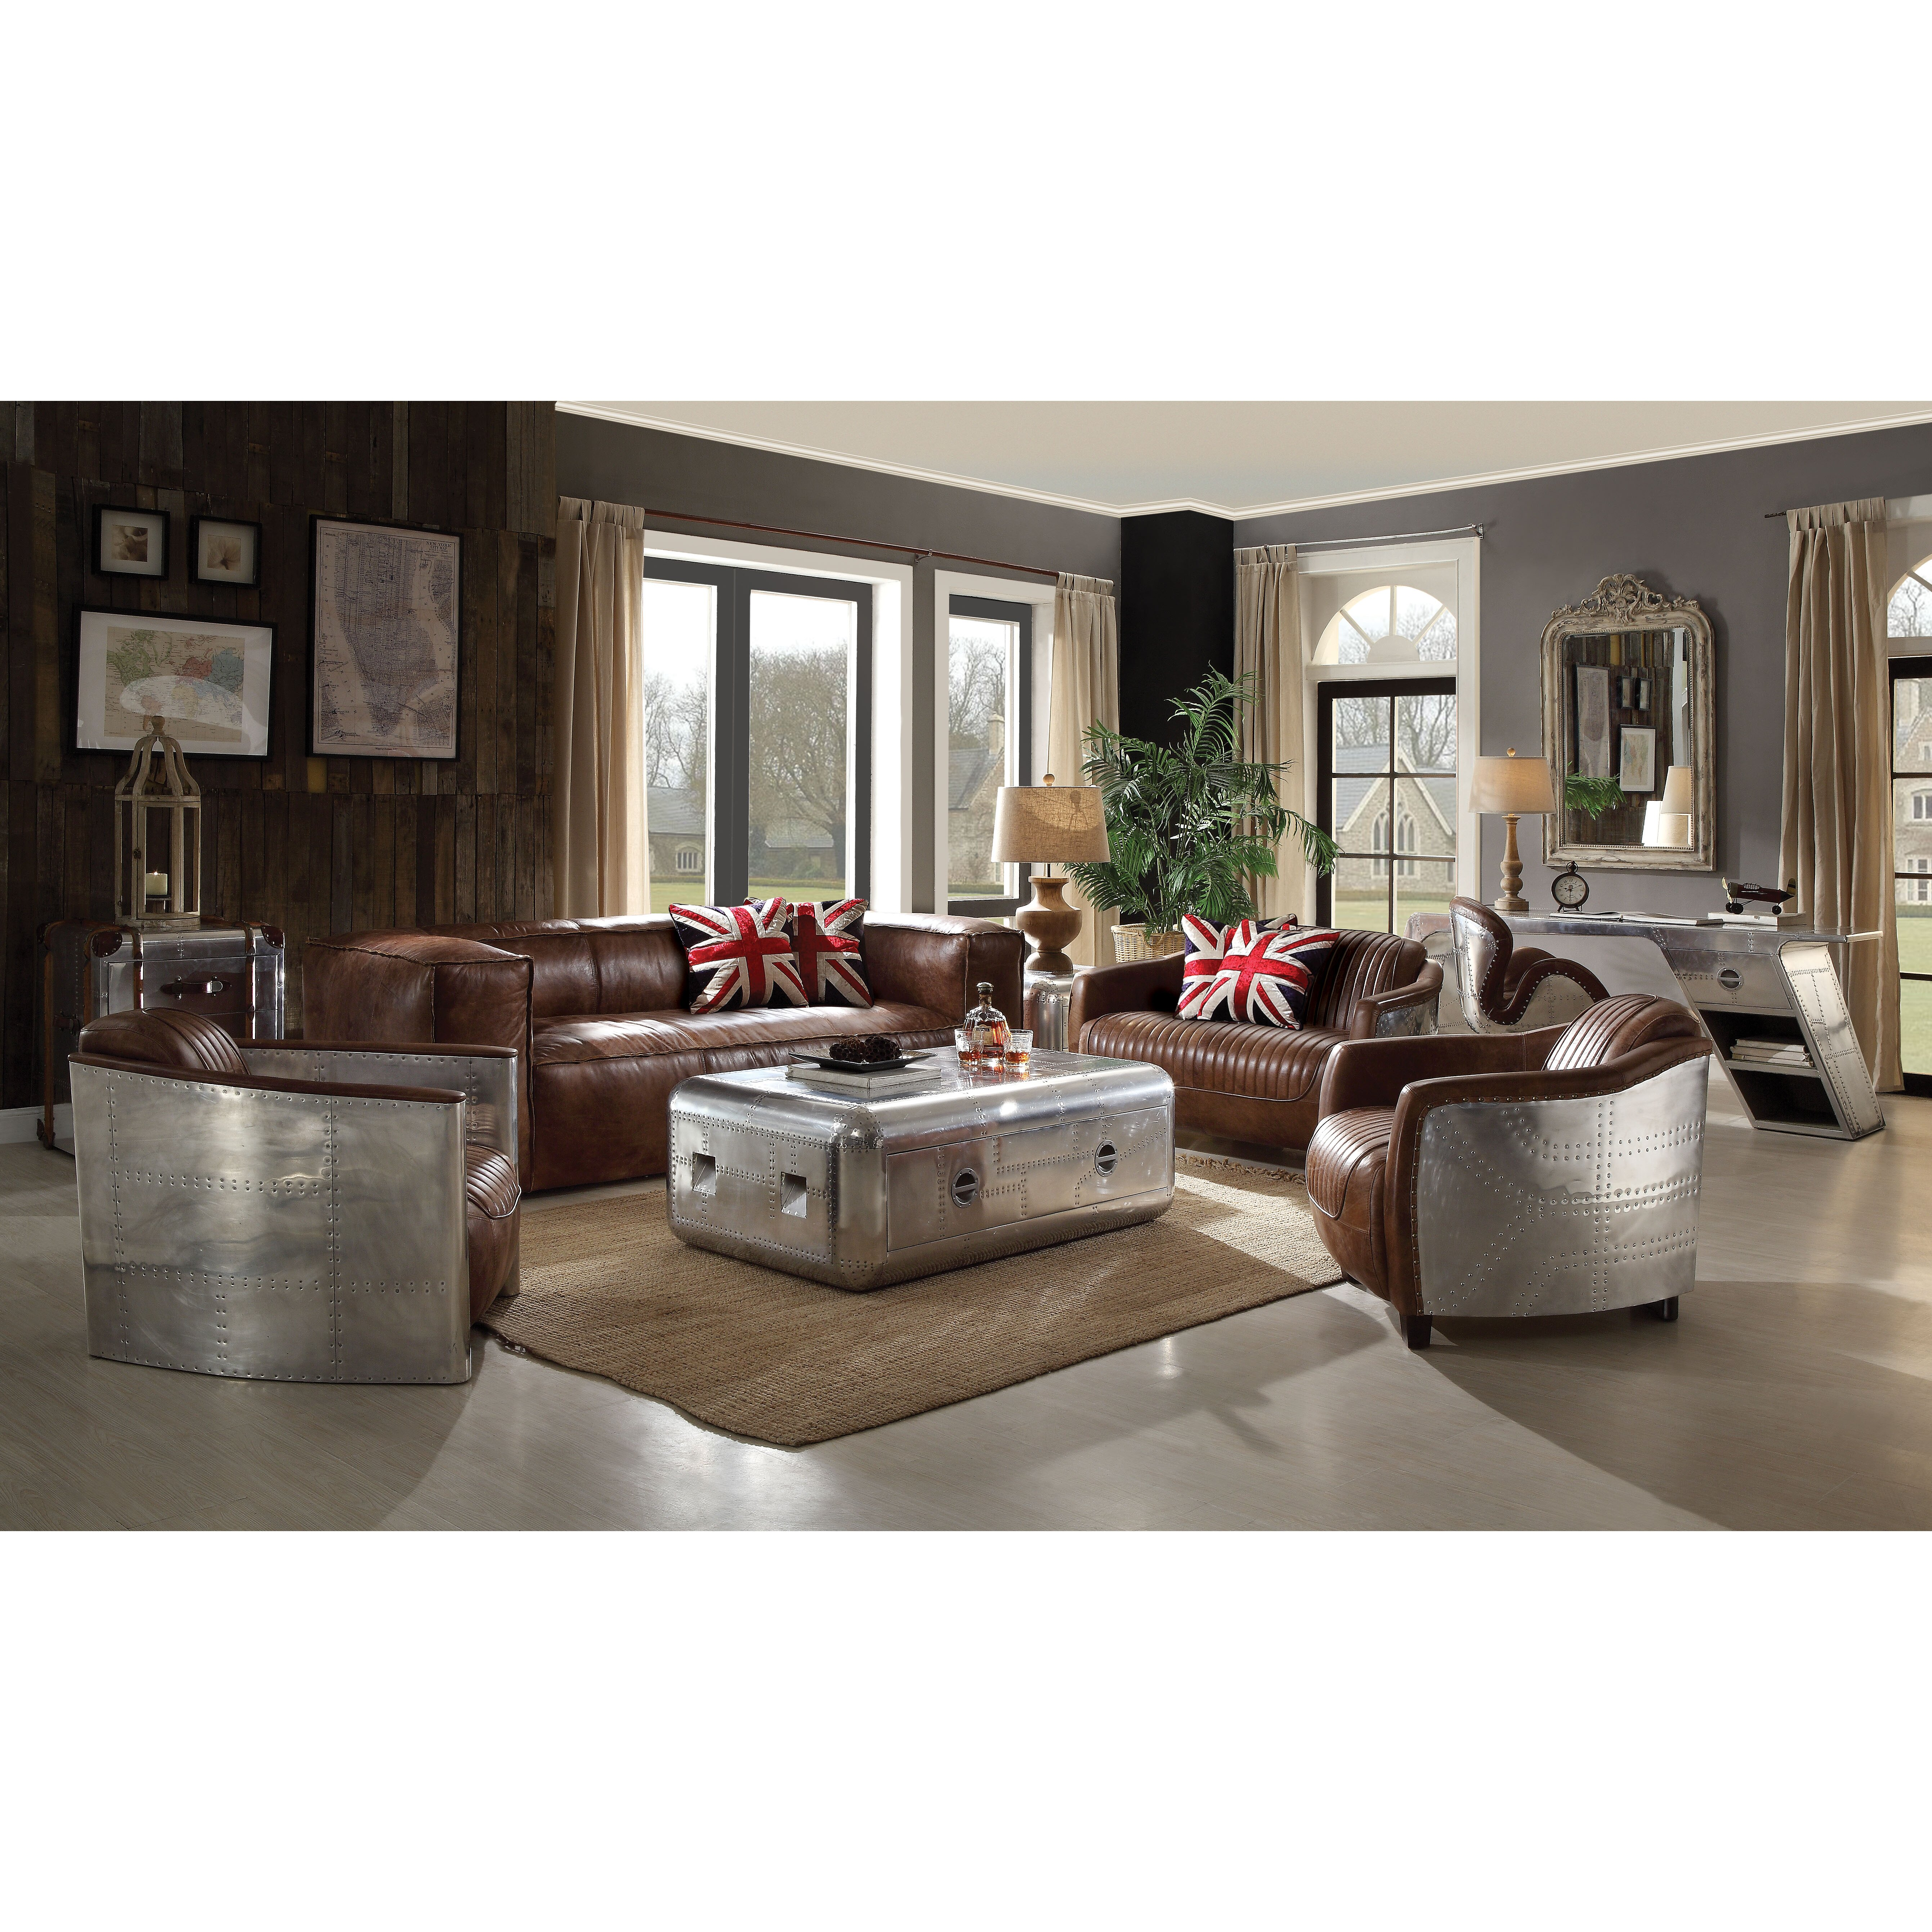 Acme Furniture Brancaster Living Room Collection Reviews Wayfair .